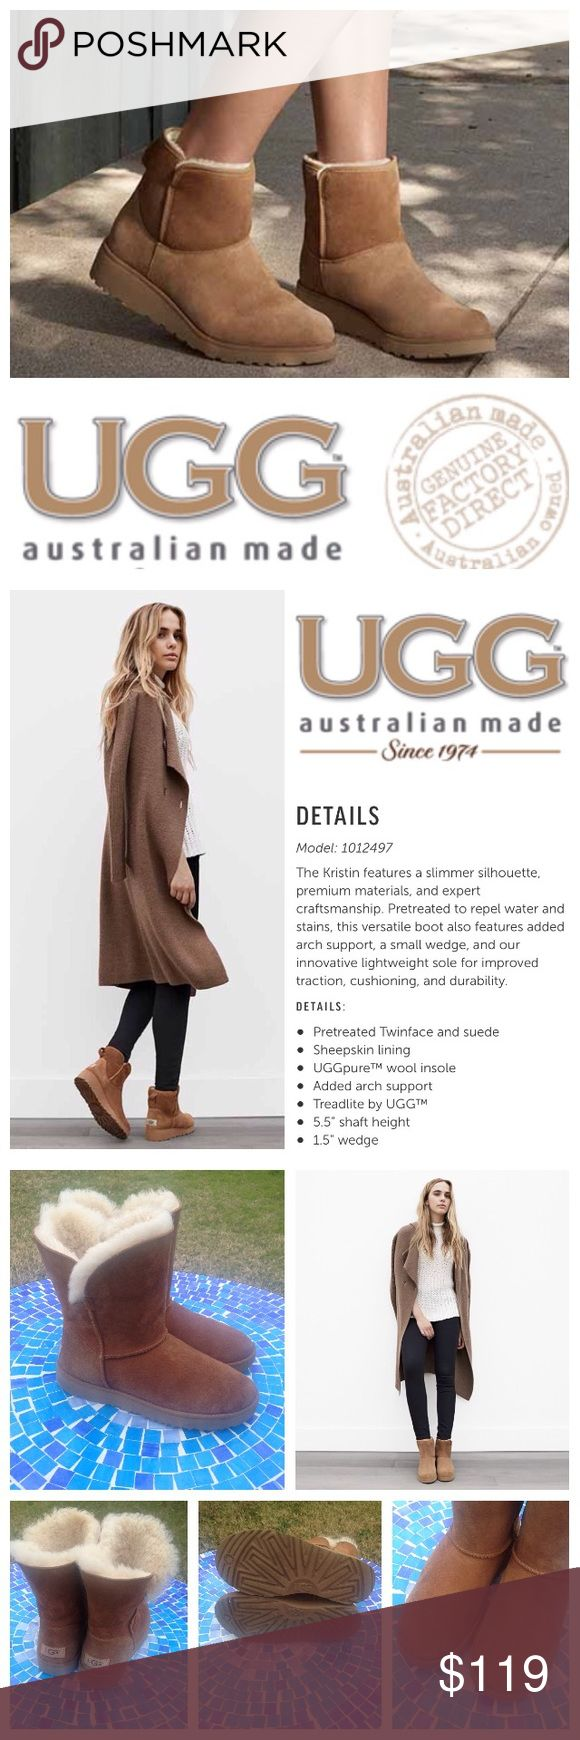 LIKE NEW!  UGG Australia Kristin boots These 100% authentic UGG Australia Kristin boots feature absolutely everything you love in the classic short boot, reimagined with arch support, a small wedge & a more-cushioned sole!  These boots will keep you beyond comfy & ultra-stylish for a fit & feel that are second to none!  This new UGG design is sure to be shut for years to come!  Size is 7 in women's.  Barely worn, in beautiful condition & ready to totally become your favs!  Retail at $160…